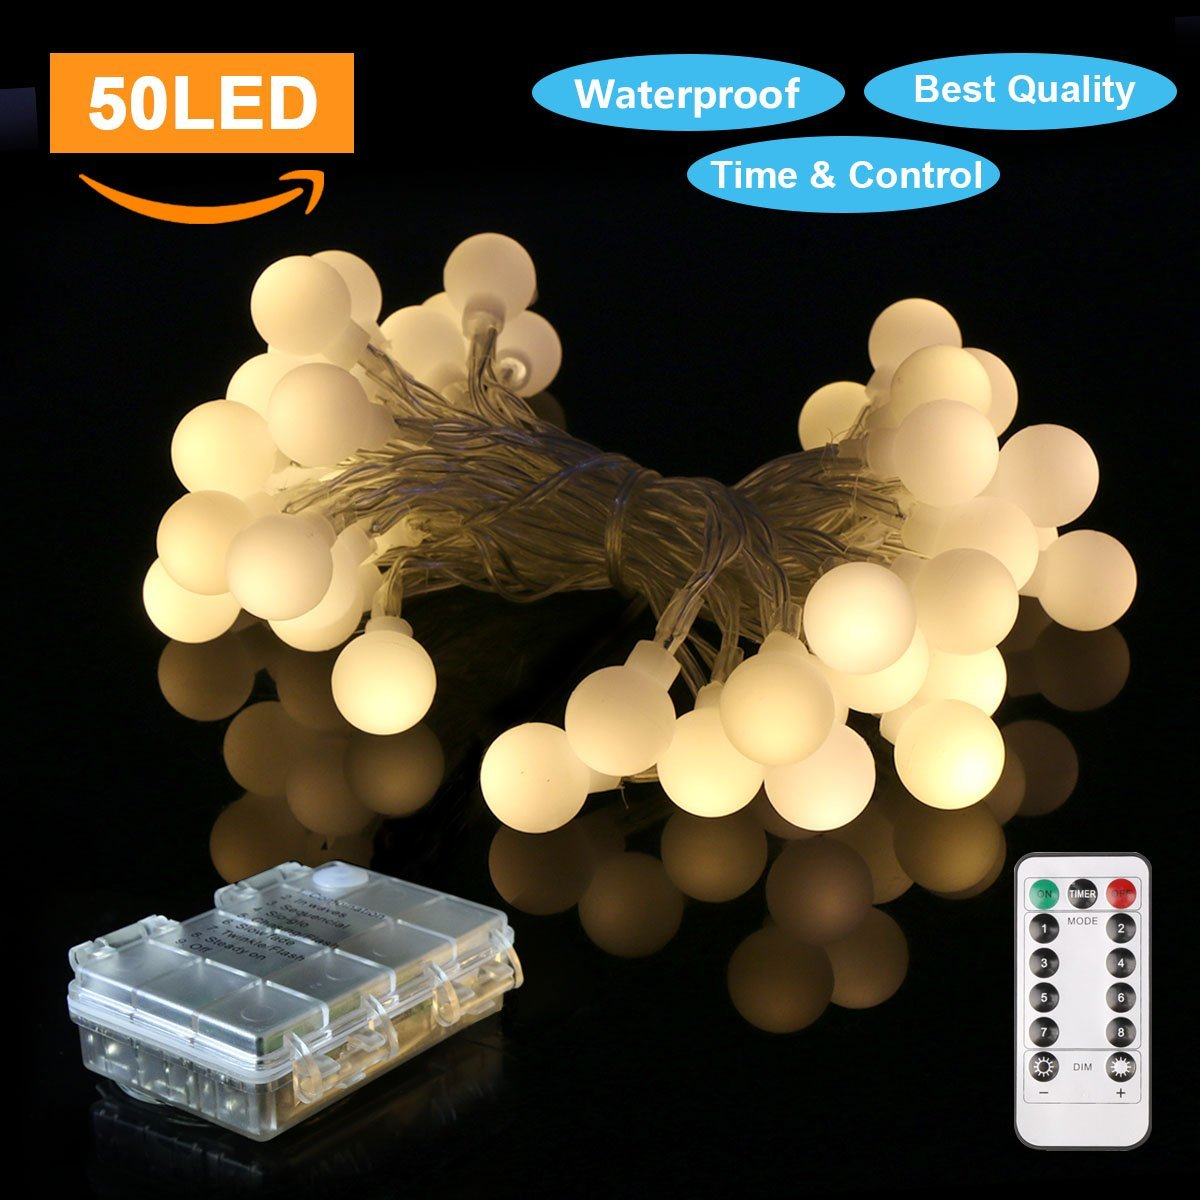 LED Ball String Lights Battery Operated, 16.5ft 50 LED Fairy Lights Battery Pack,Waterproof Globe Light 8 Modes for Home Bedroom Garden Festival Wedding Outdoor Indoor Decoration Use (Warm White)